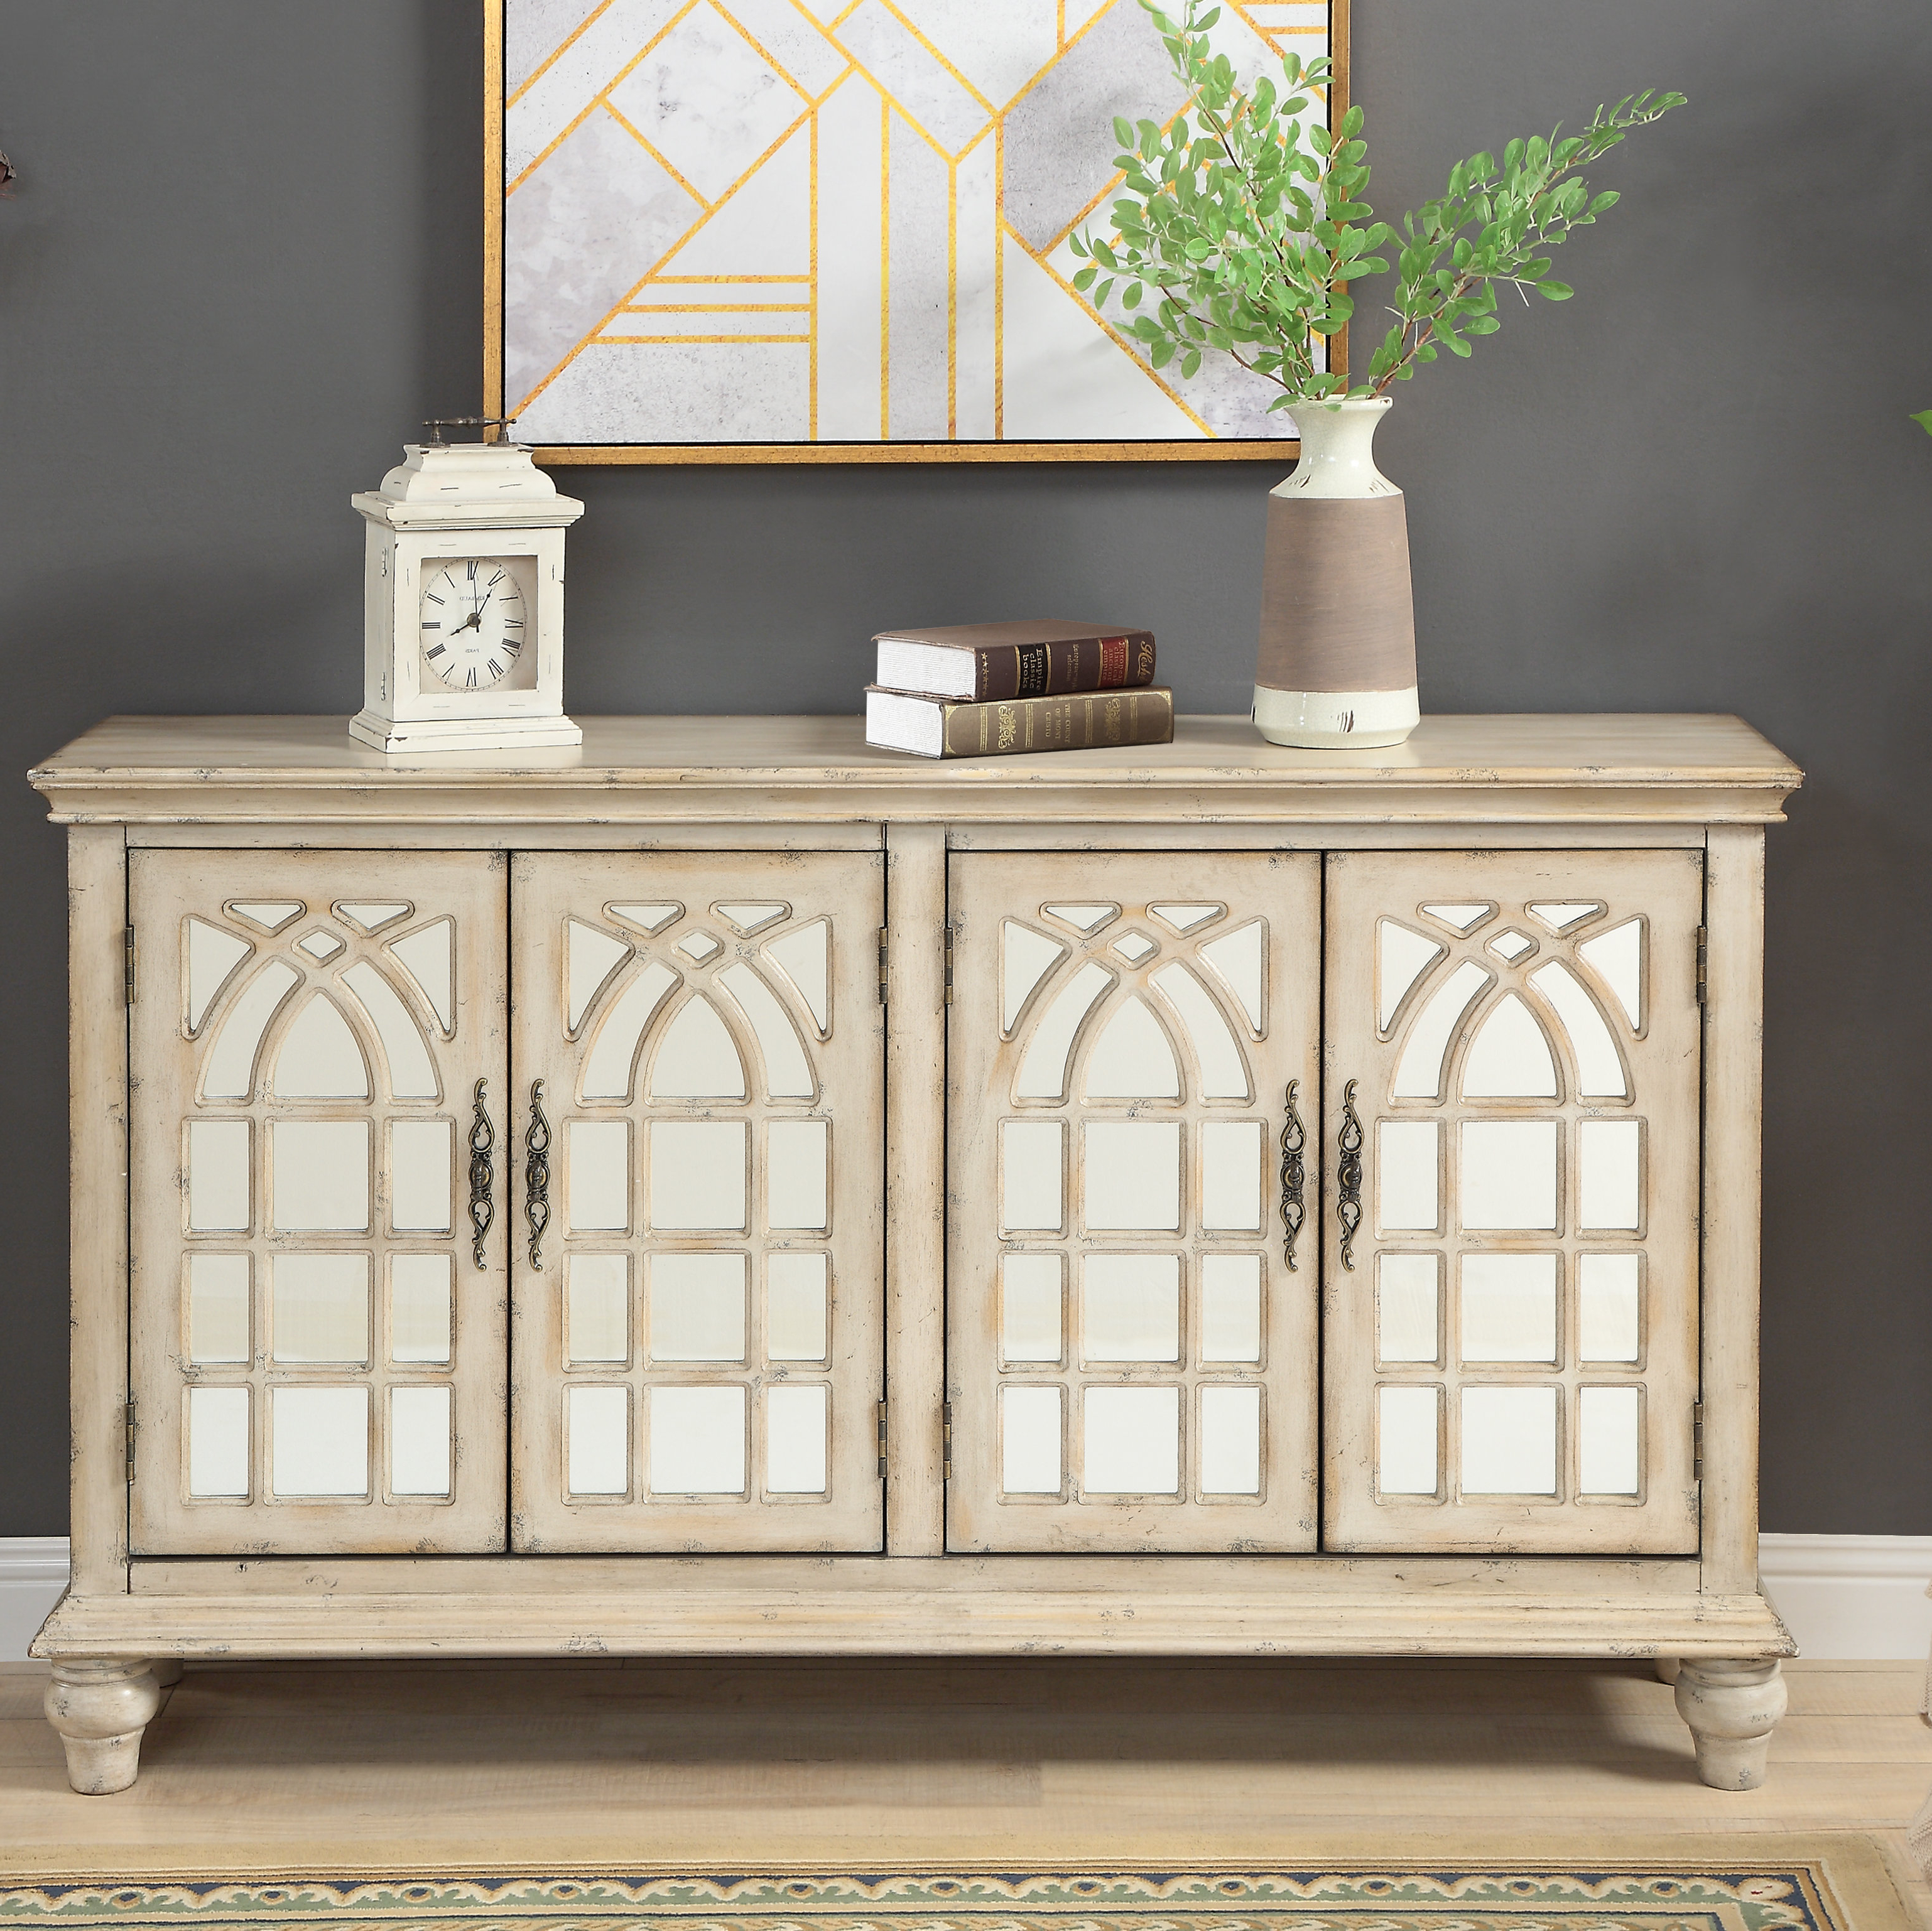 Favorite Farmhouse & Rustic One Allium Way Sideboards & Buffets Within Fugate 2 Door Credenzas (View 6 of 20)